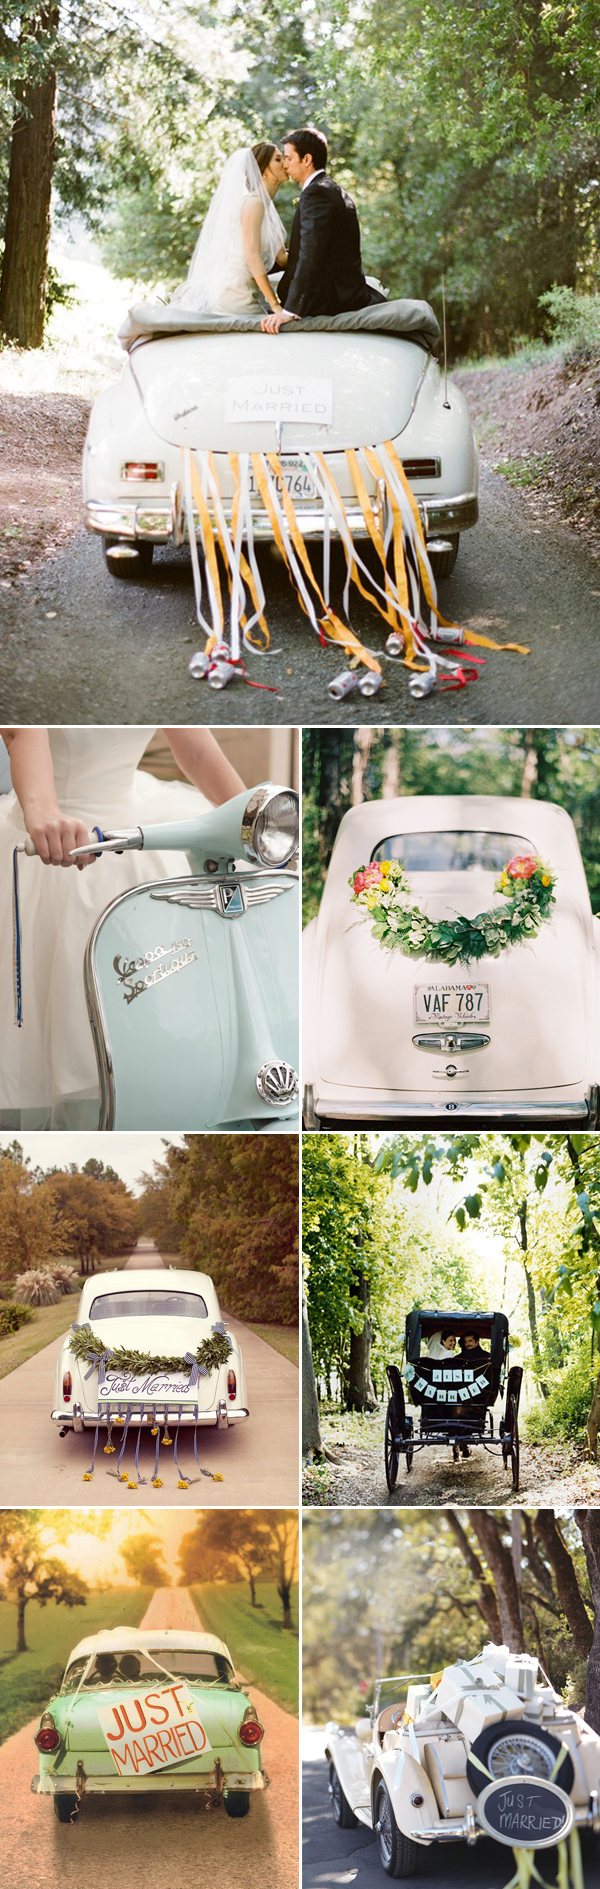 01-vintage-wedding-cars